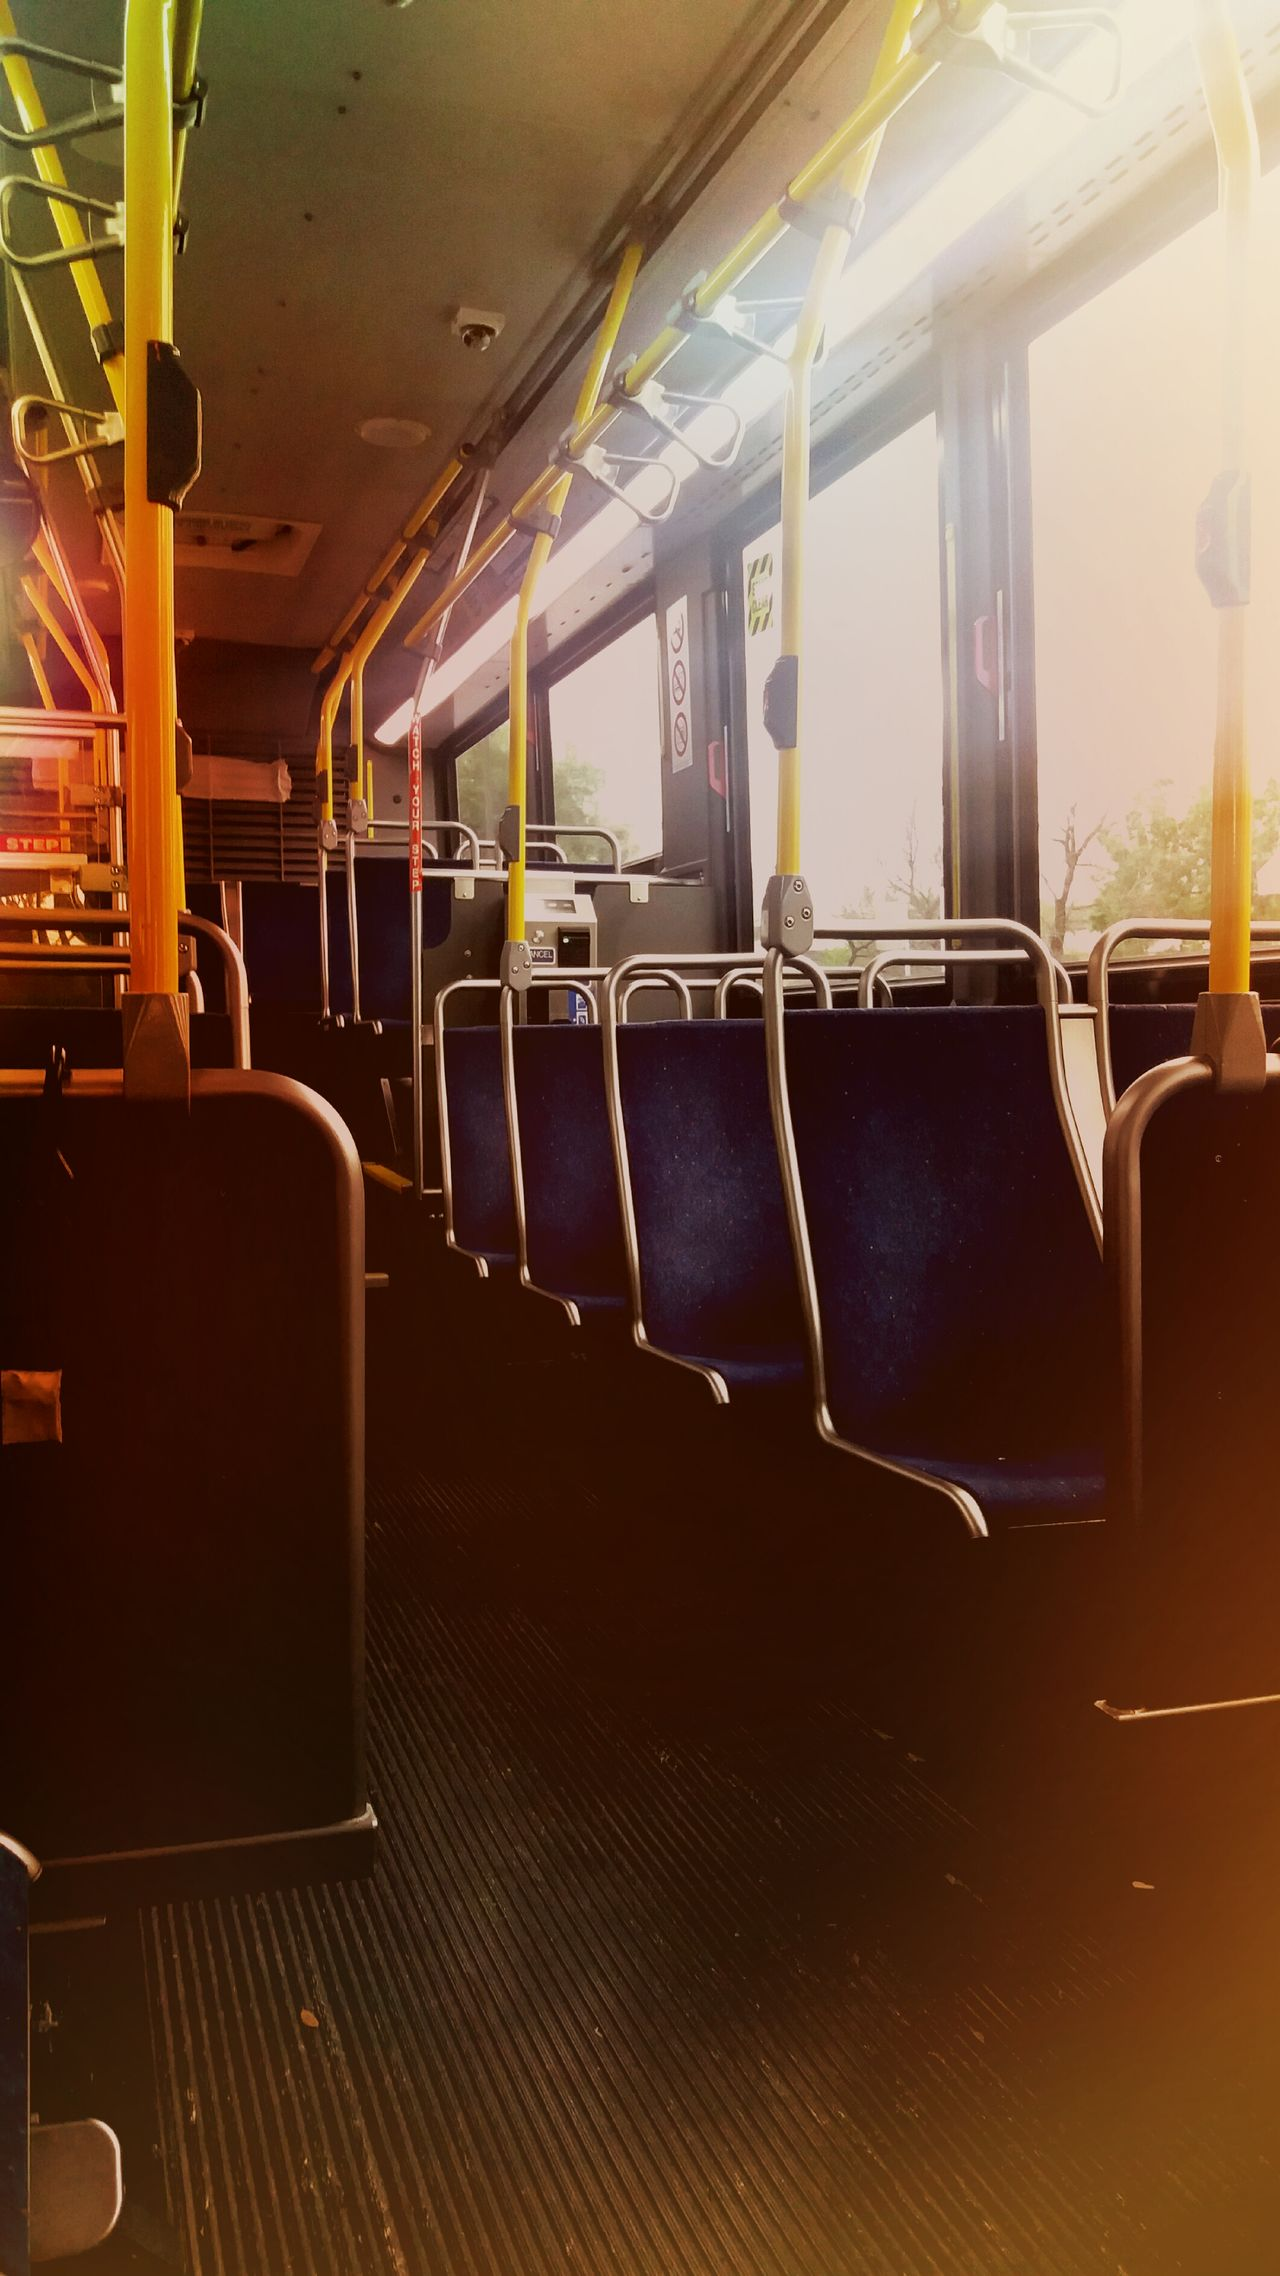 City Bus Empty Chairs Yellow Color No People Mode Of Transport Vehicle Interior can't wait till I get my car